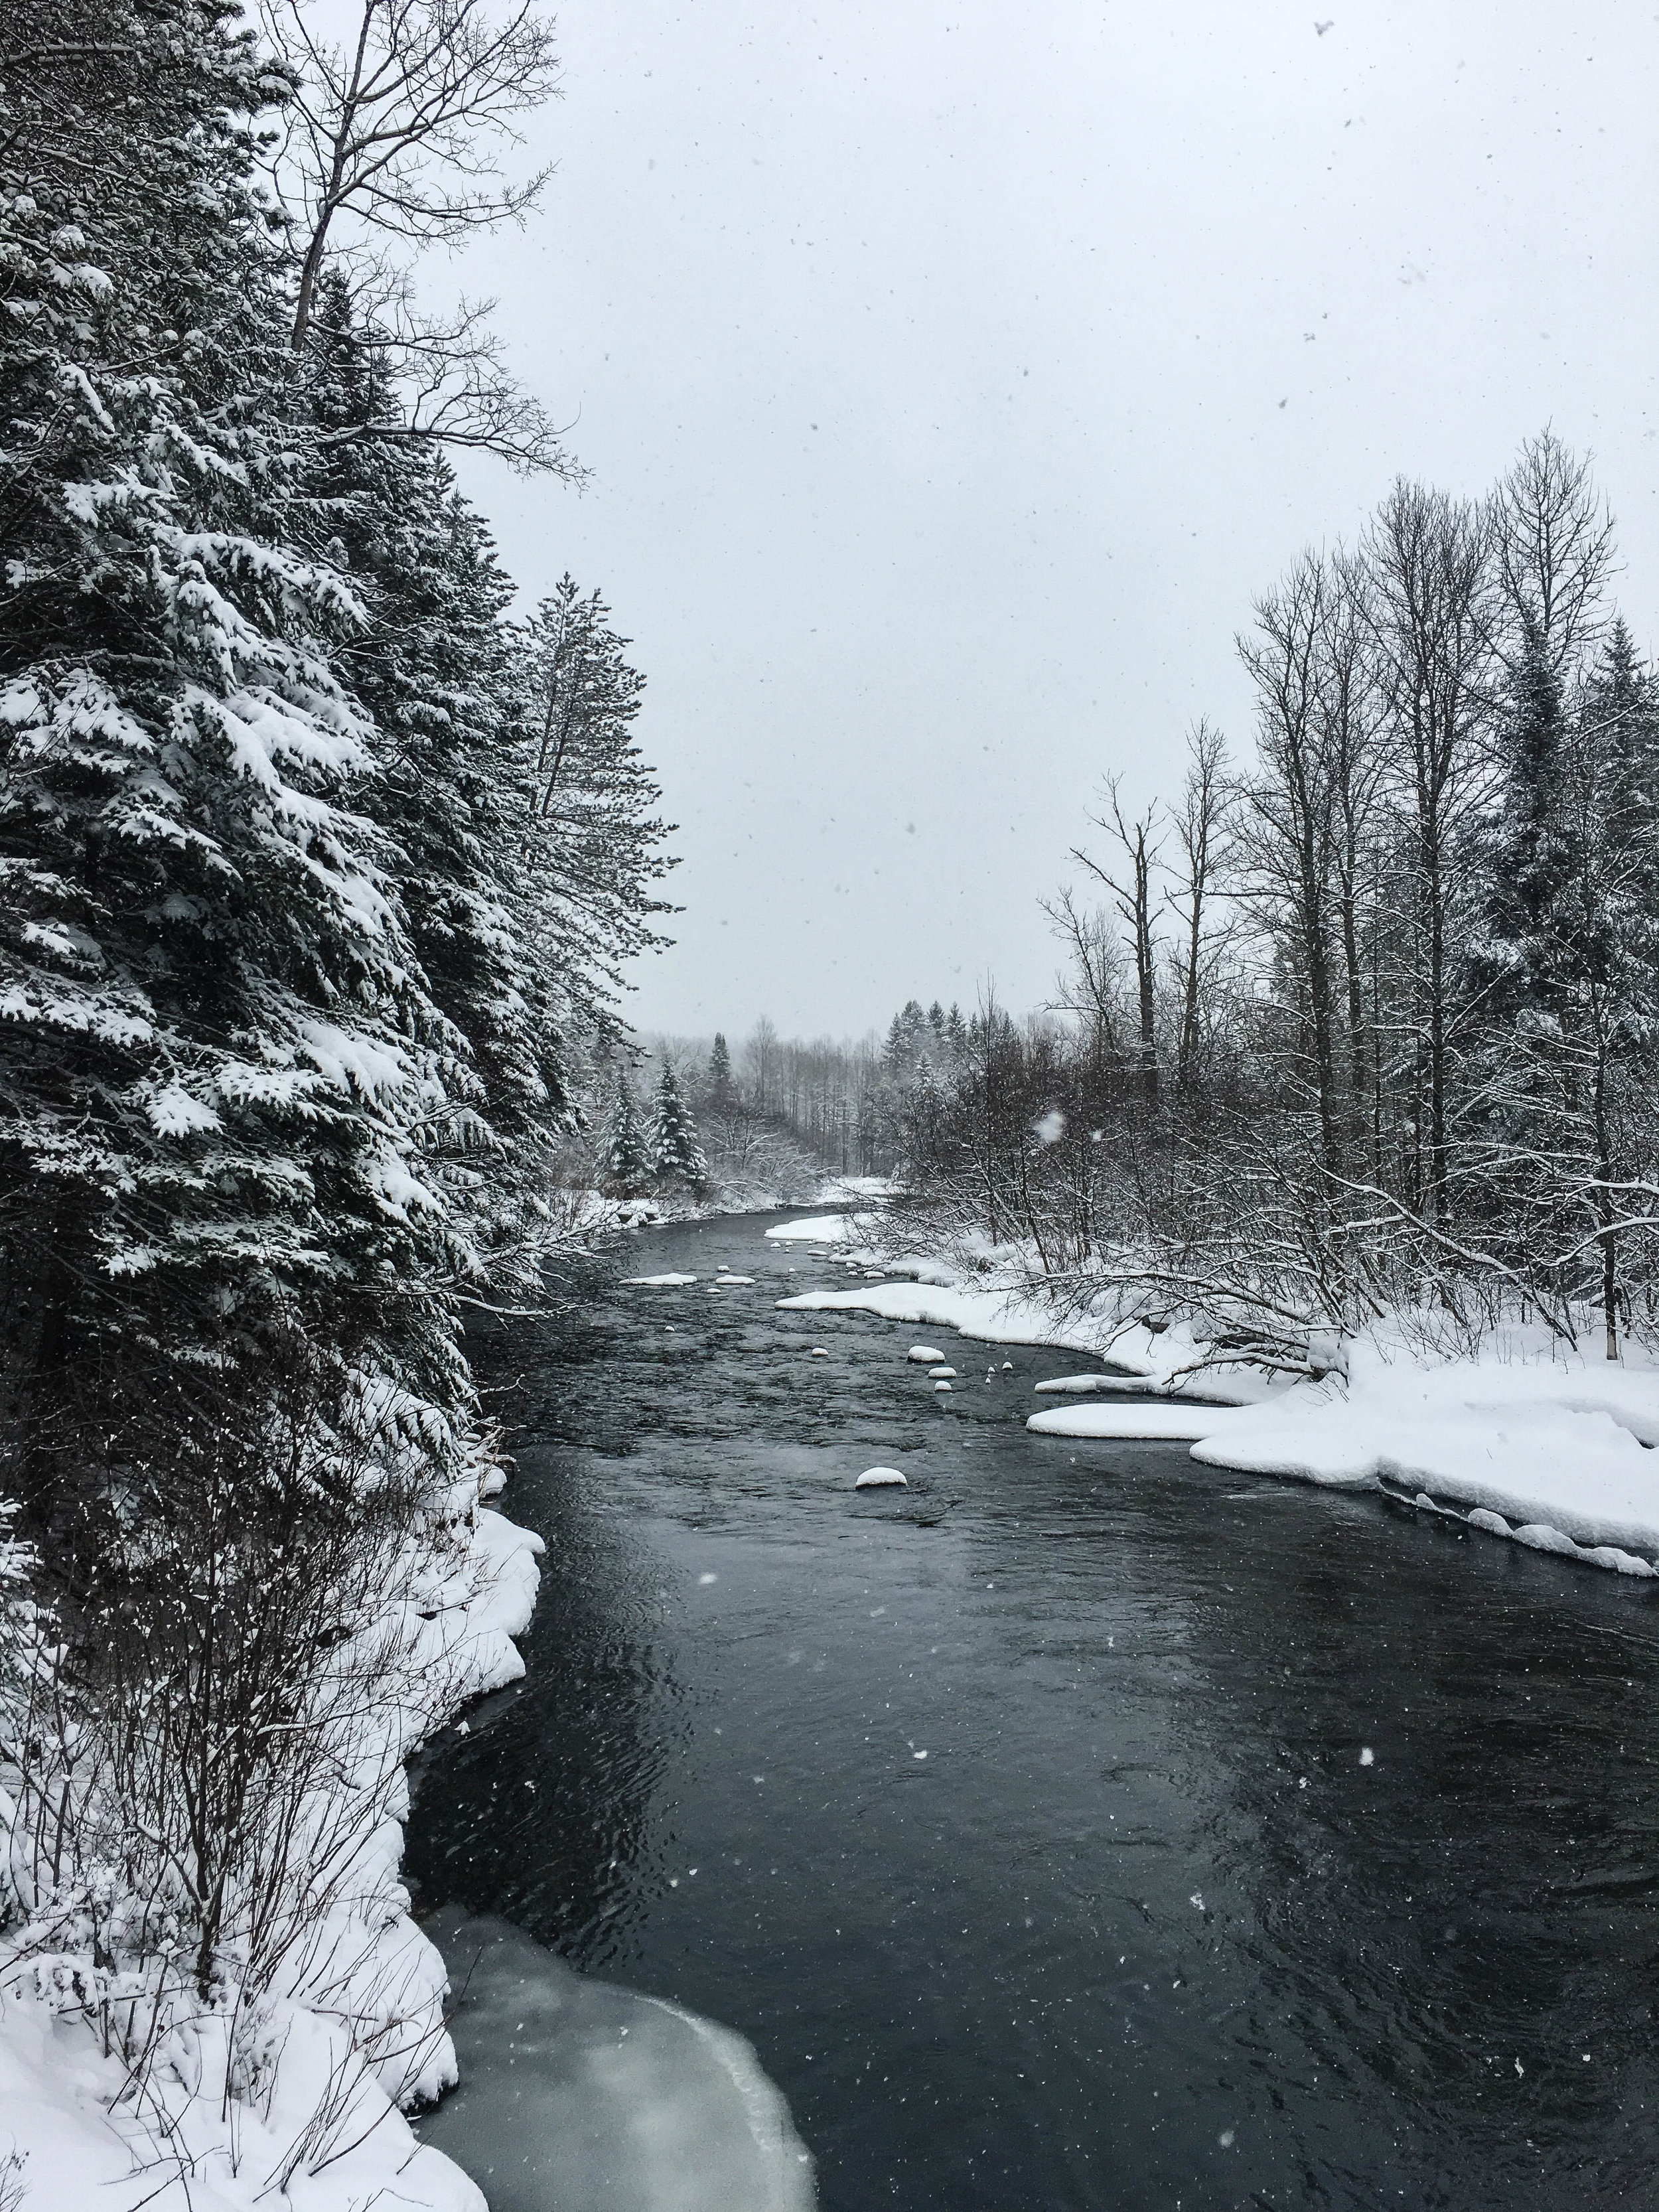 Walk in the mountains in Coaticook. There is a river, evergreens and a lot of snow